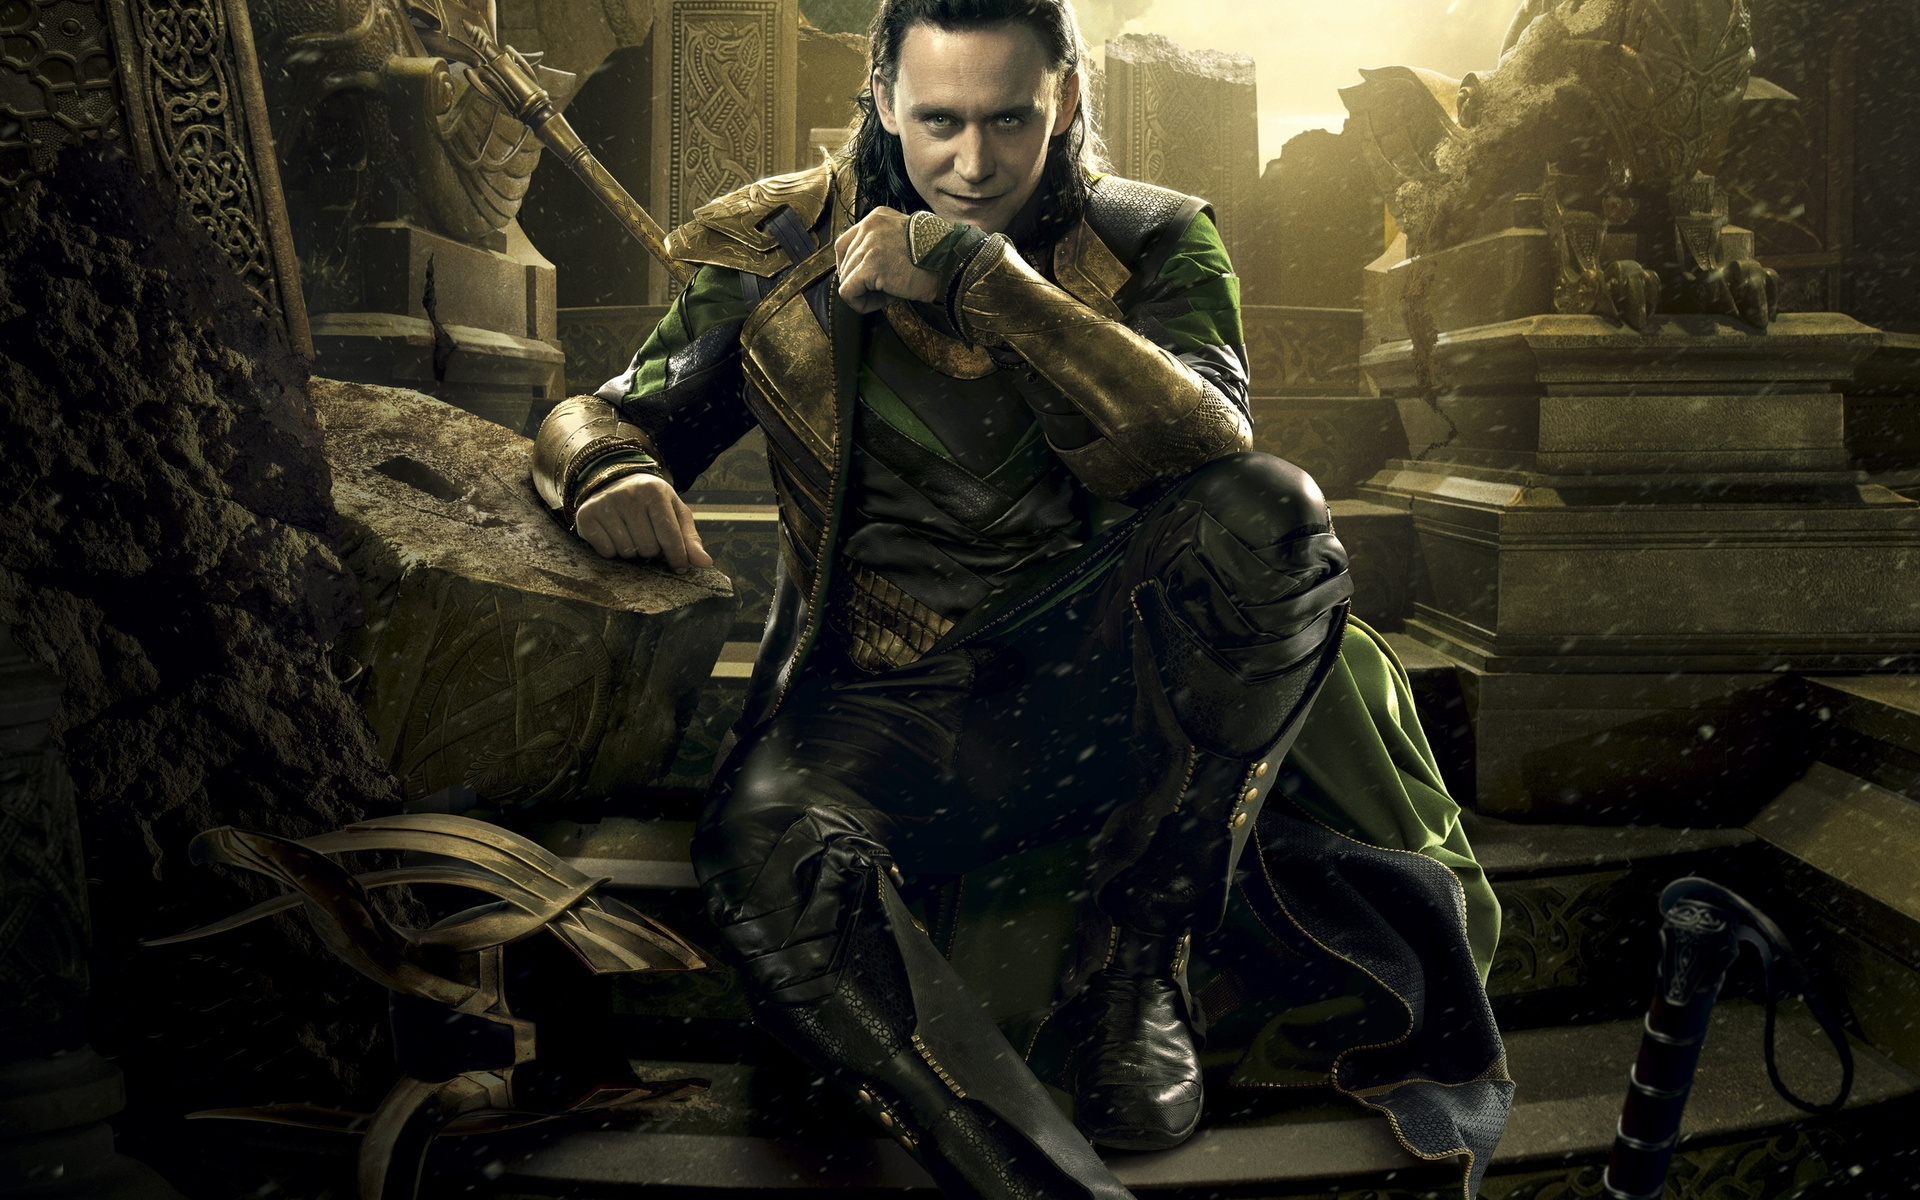 Loki Pose for 1920 x 1200 widescreen resolution